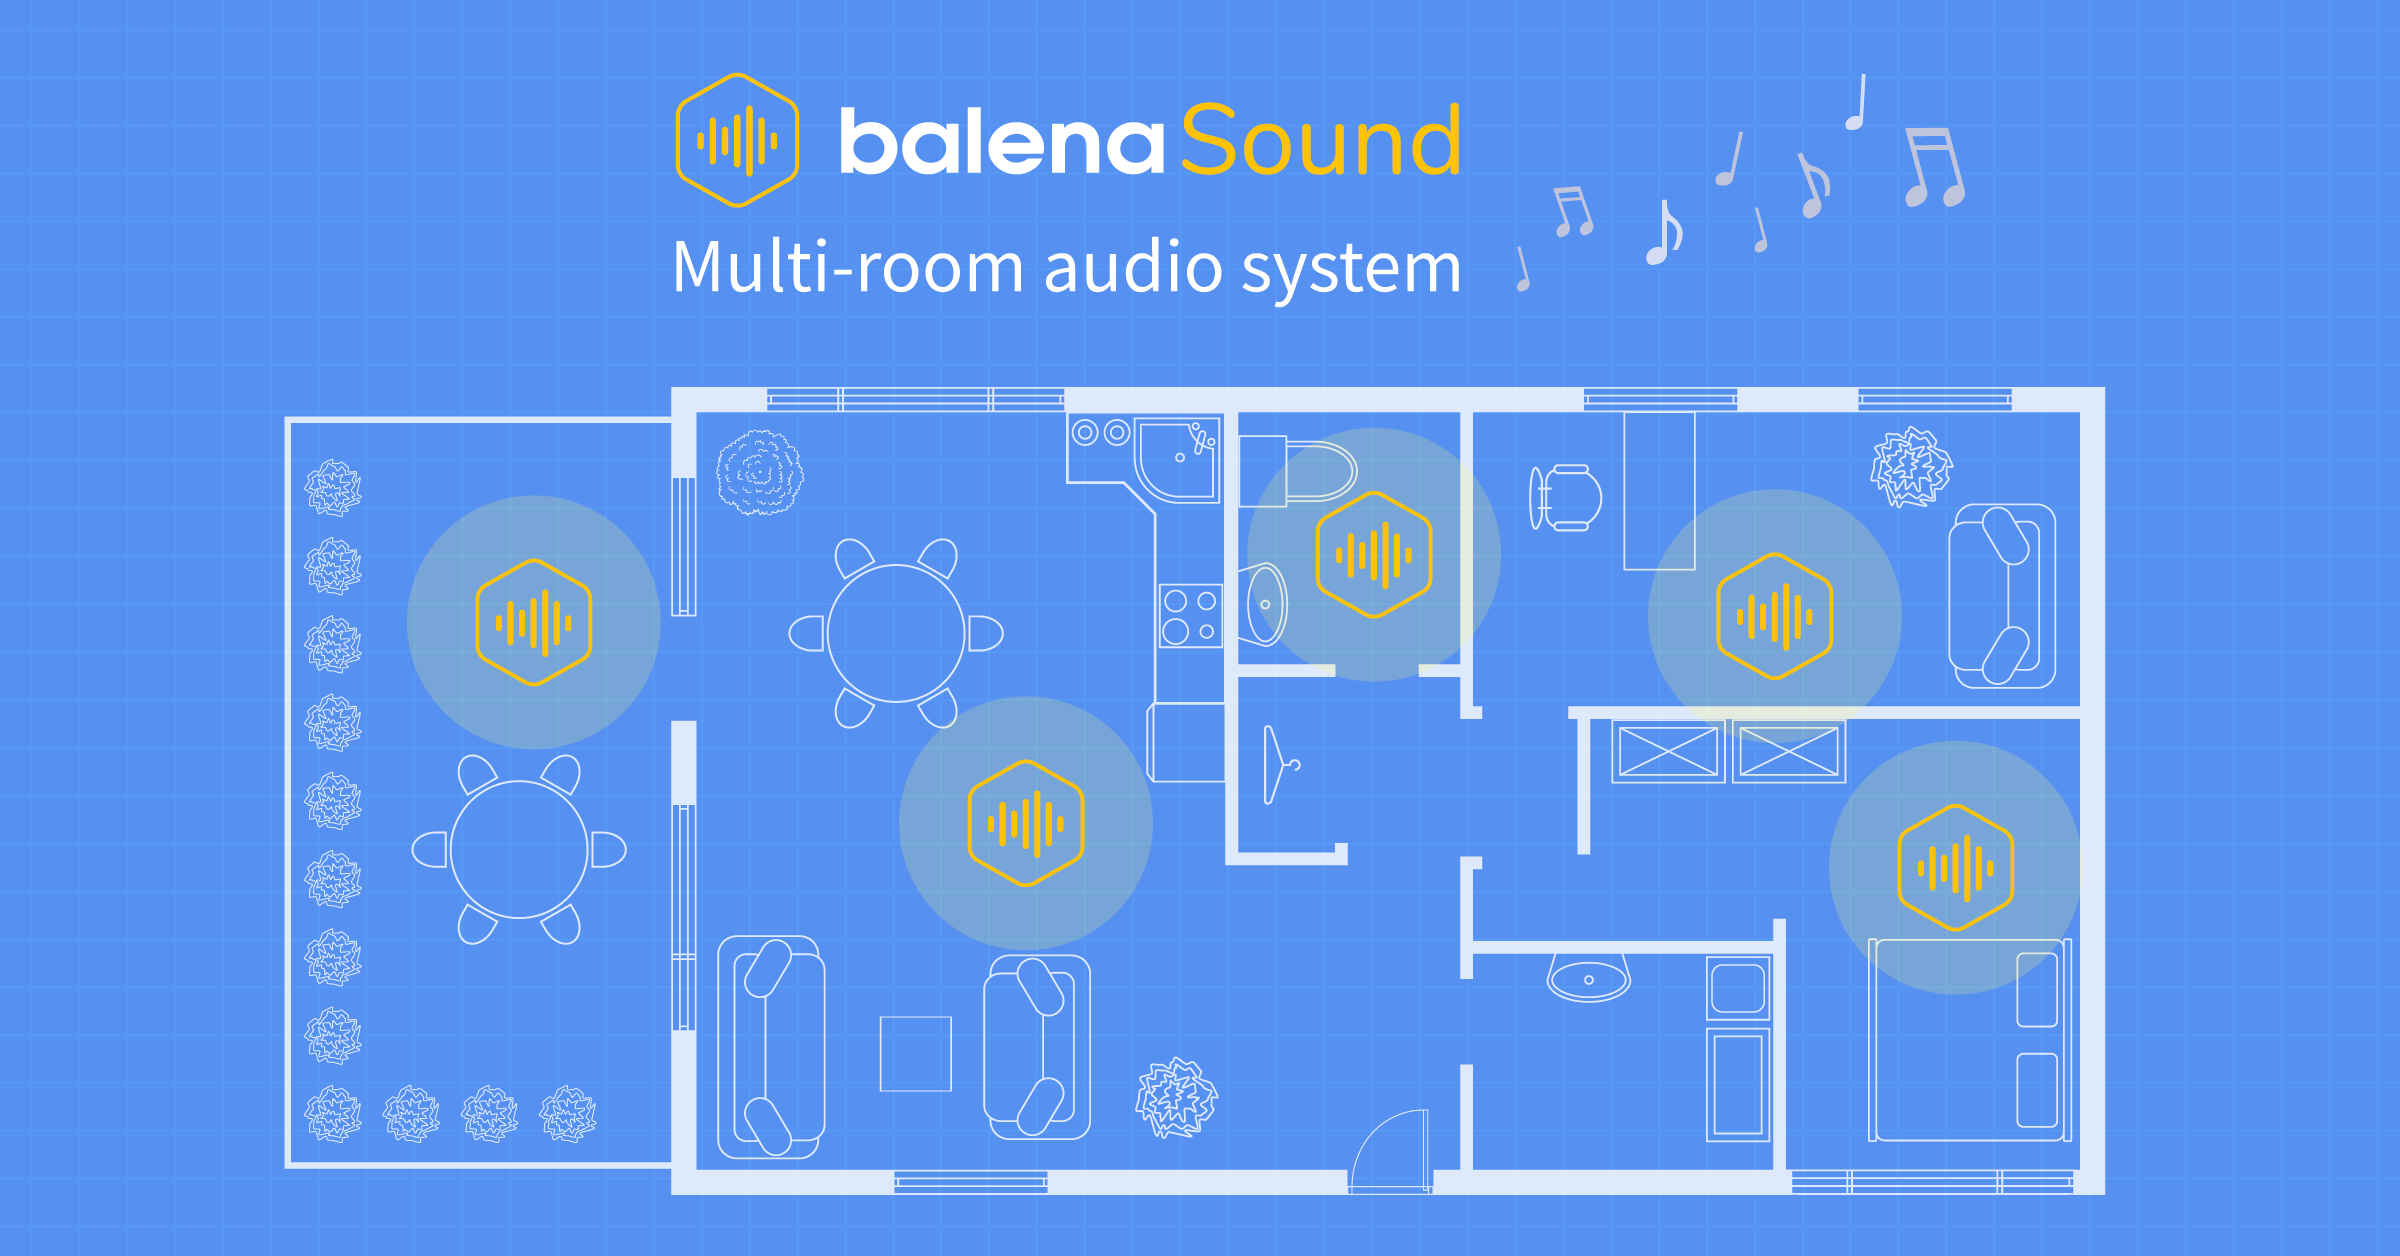 Build your own multi-room audio system with Bluetooth, Airplay, and Spotify using Raspberry Pis